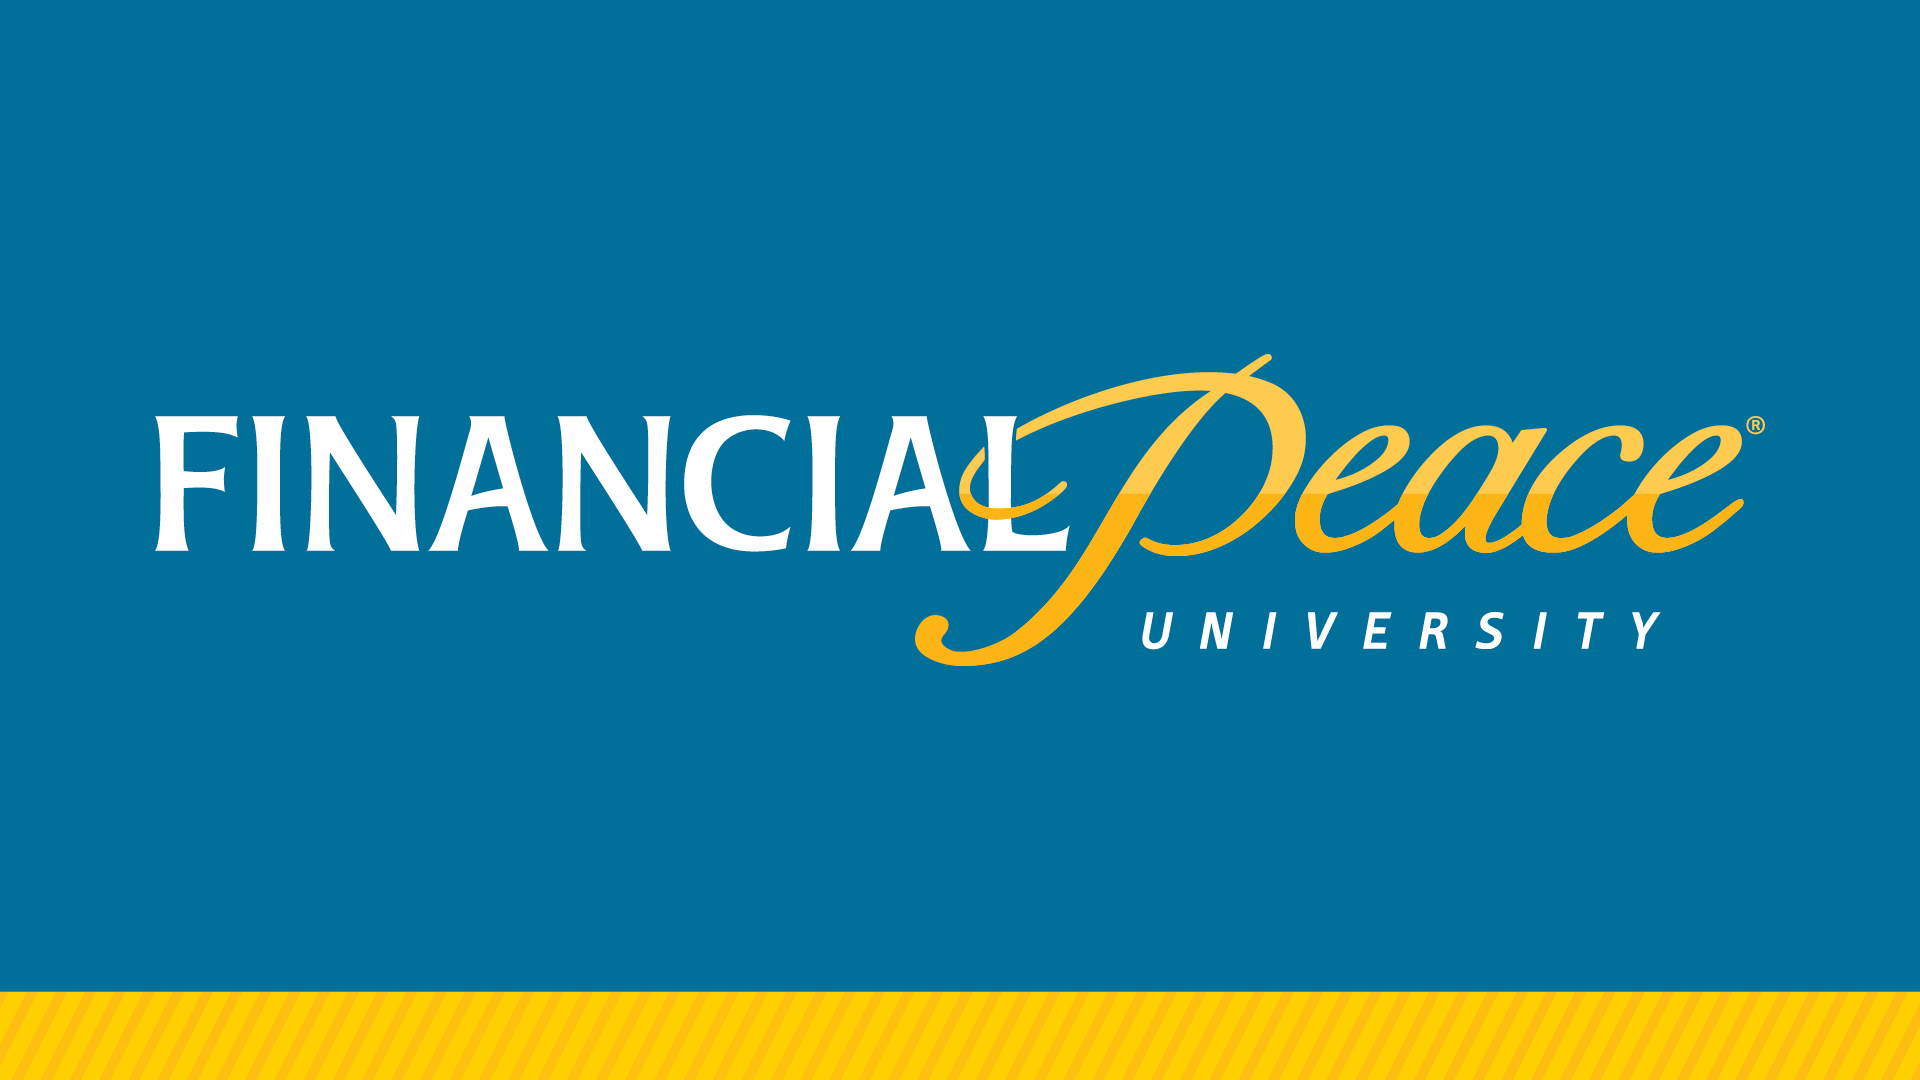 Financial peace slide large logo